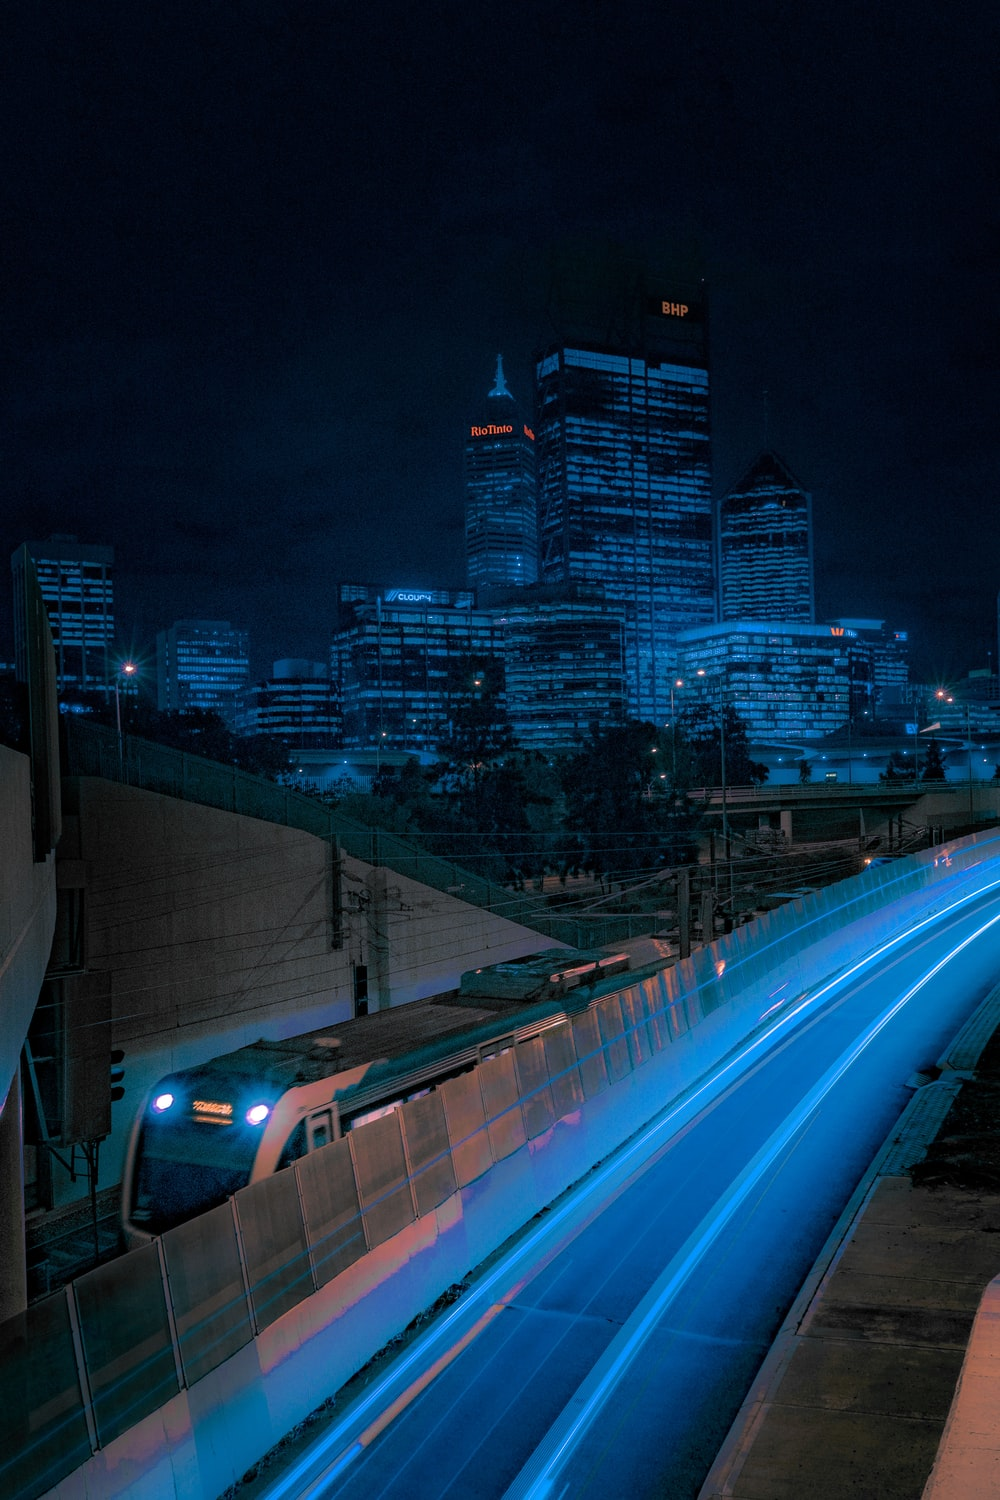 grey and blue train photograph